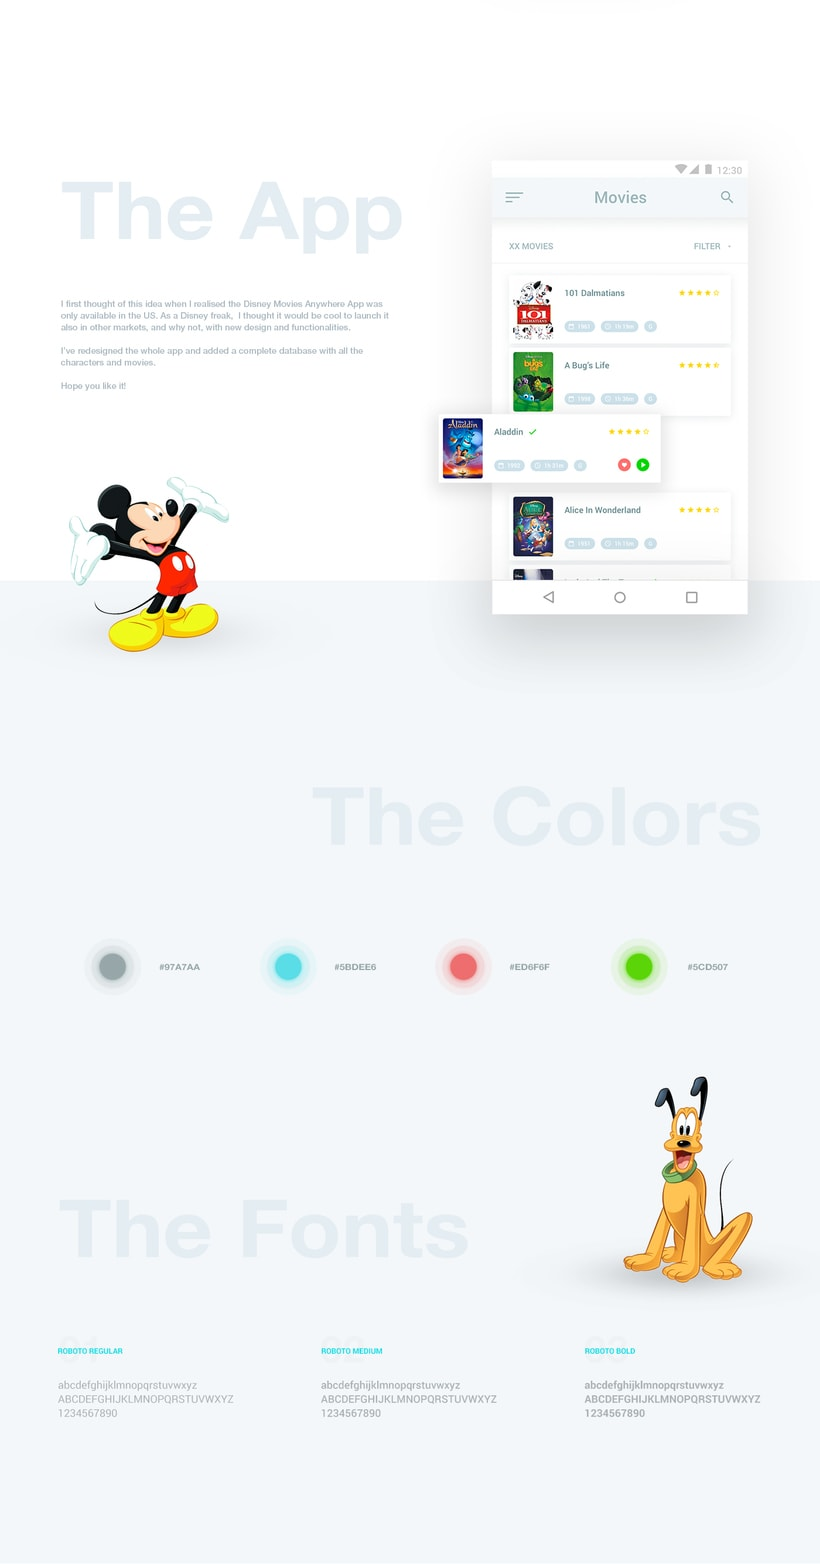 Disney Movies Anywhere - Mobile App Redesign 0